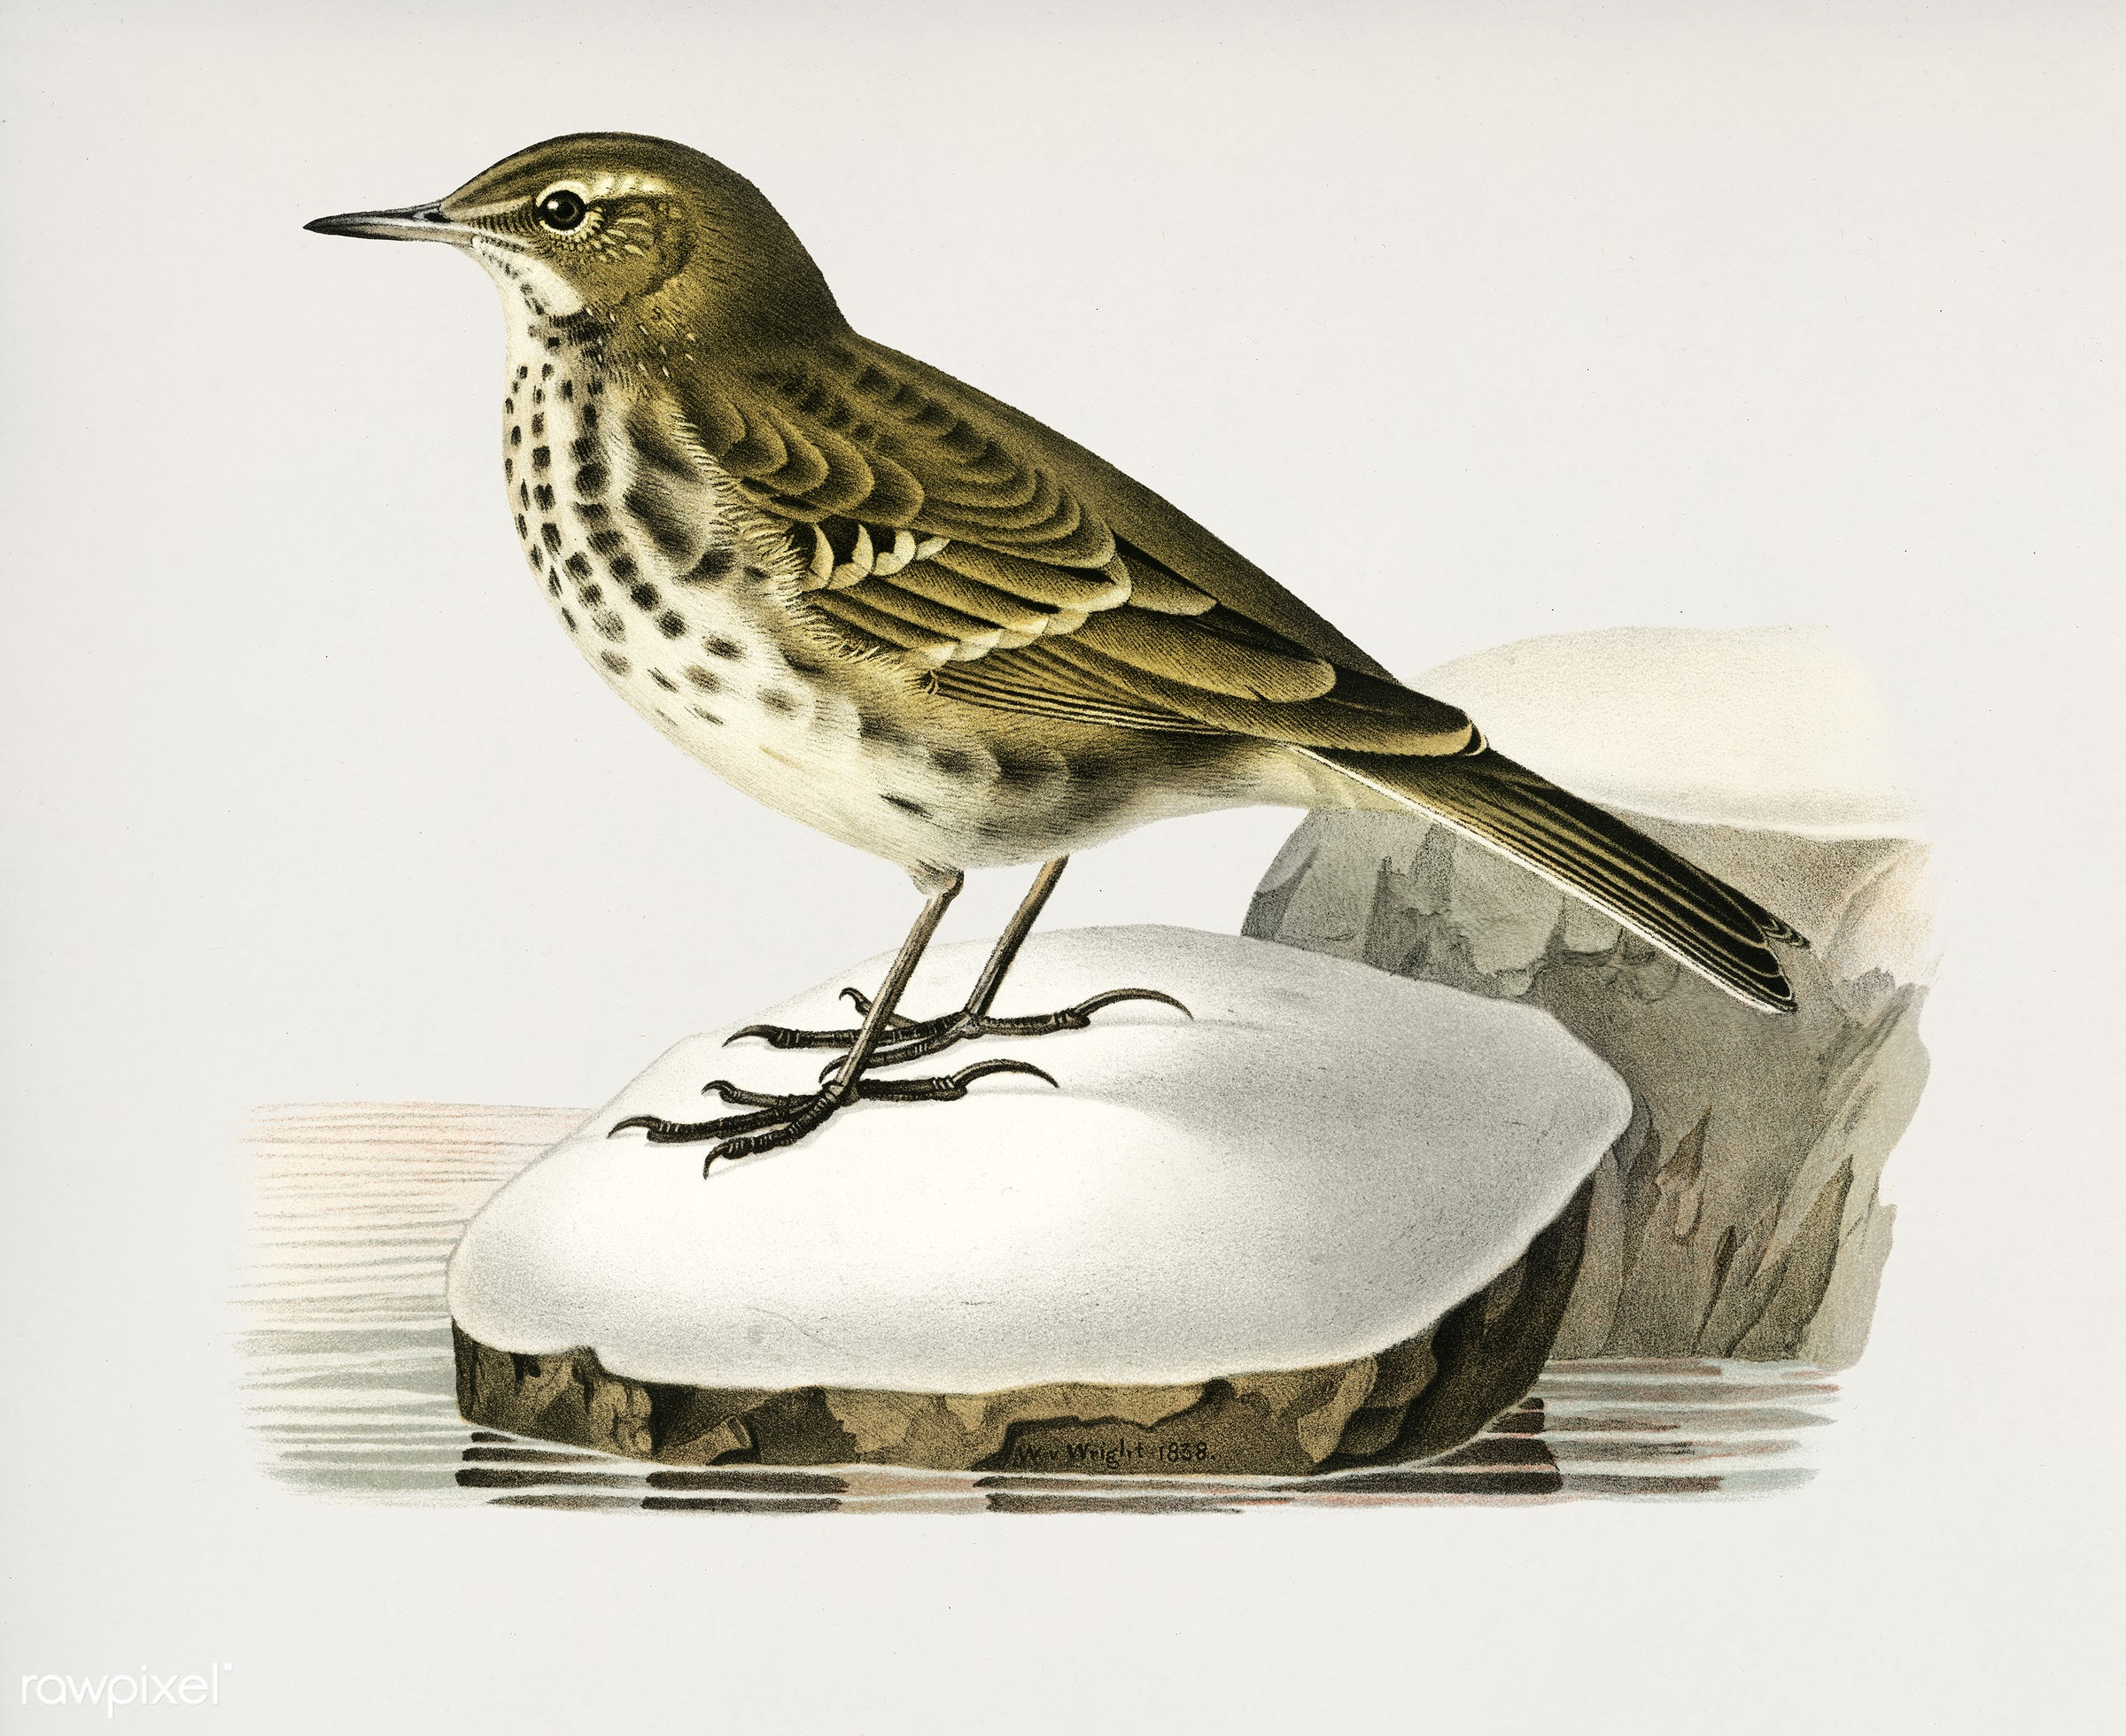 Water pipit (Anthus spinoletta rupestris) illustrated by the von Wright brothers. Digitally enhanced from our own 1929 folio...